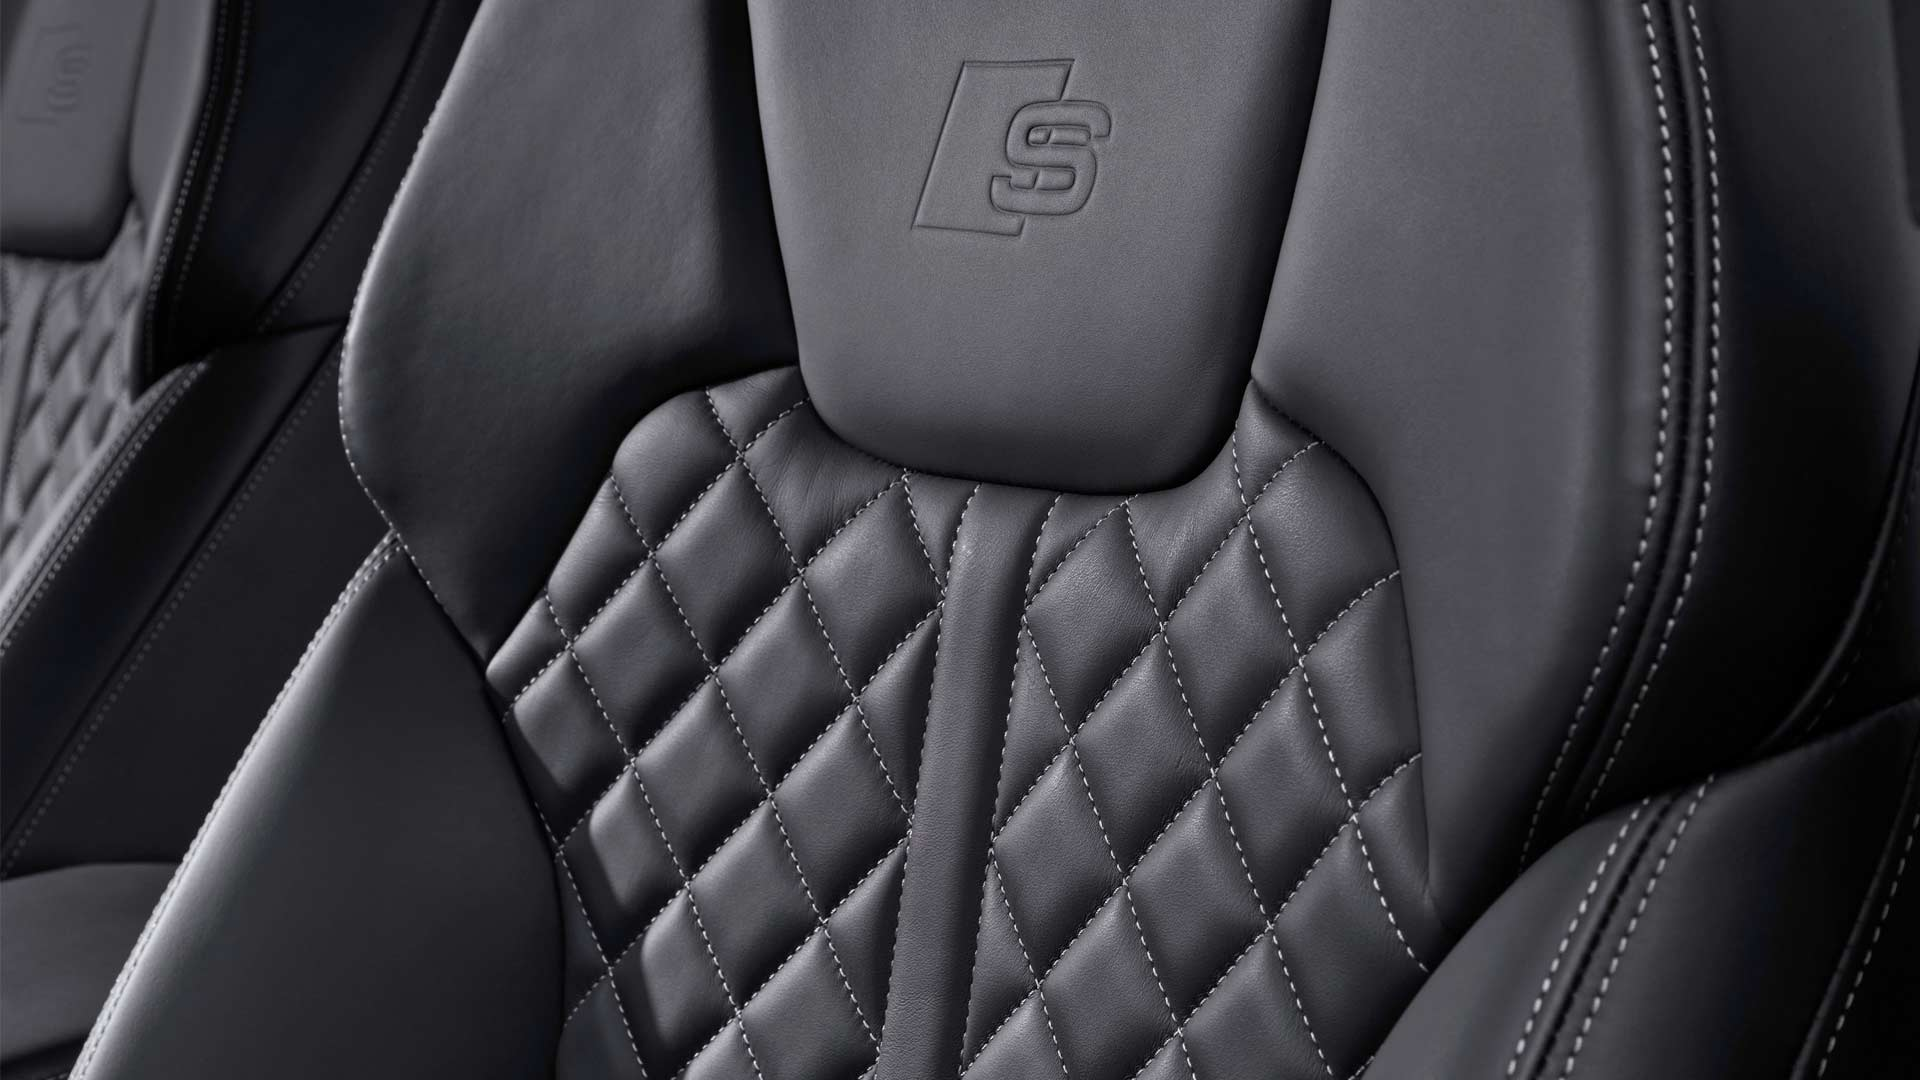 2019-Audi-SQ5-TDI-Interior_4